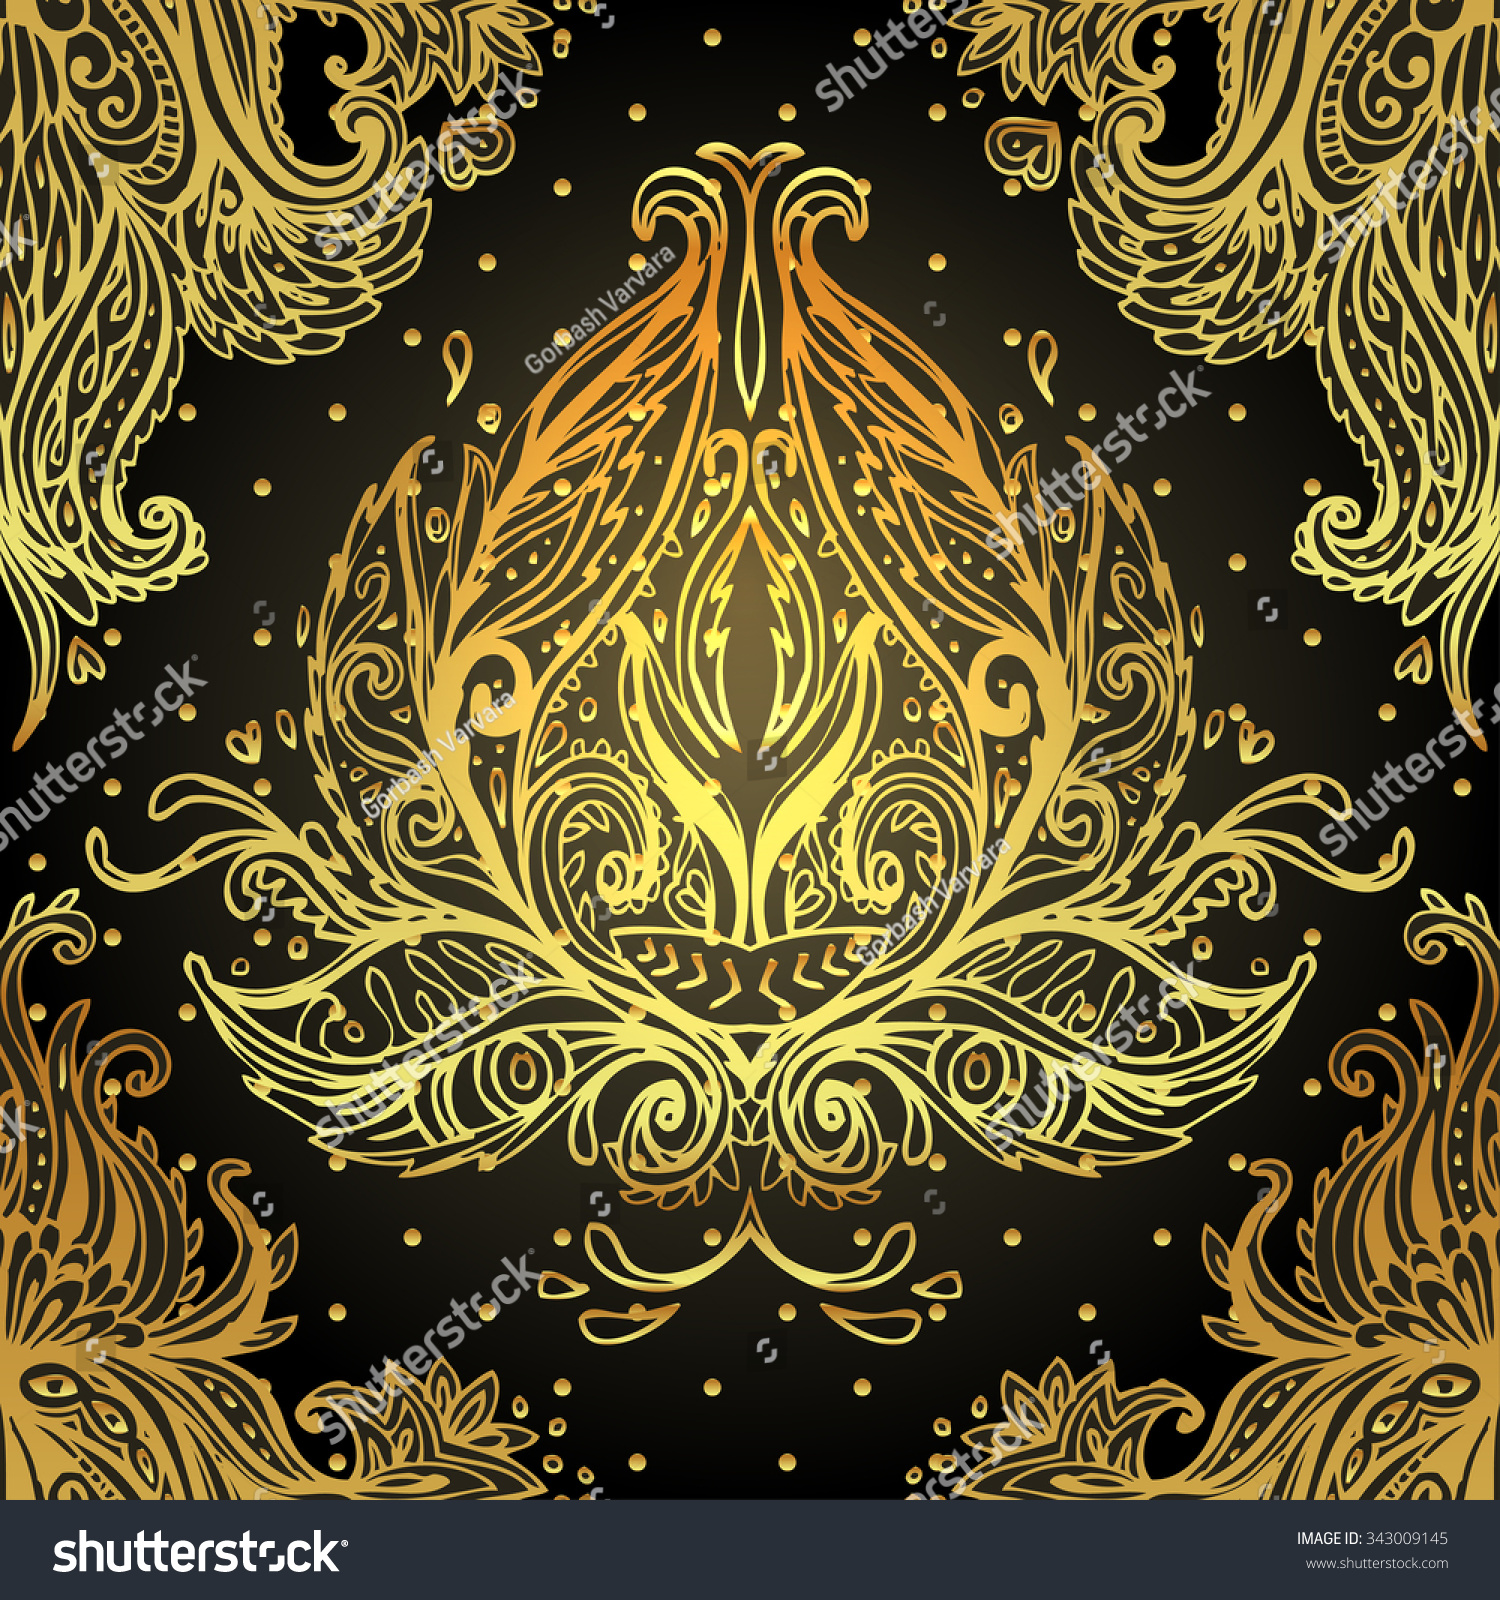 Vintage background ornate baroque pattern vector illustration stock - Seamless Vintage Vector Background Wallpaper Baroque Pattern For Textile Design In Gold Ornate